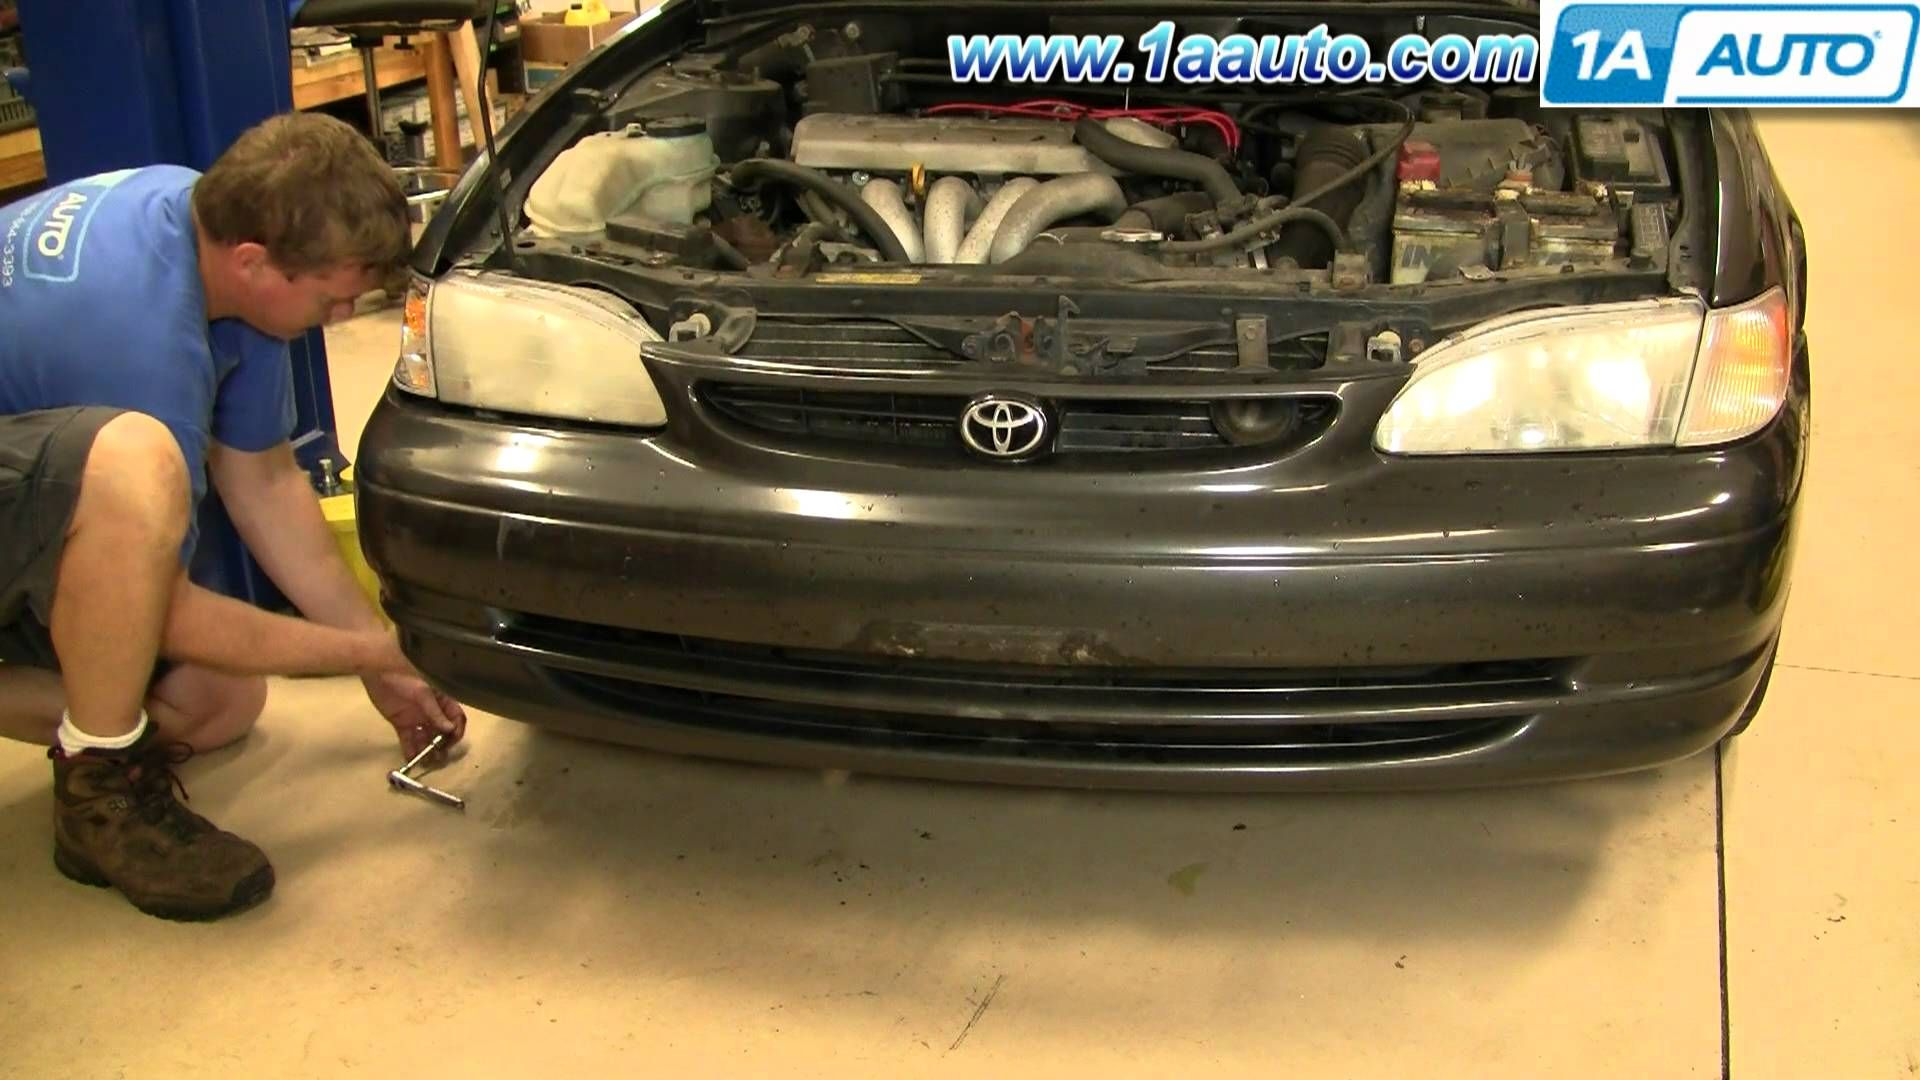 How To Install Replace Headlight And Bulb Toyota Corolla 98 02 1aauto Com Toyota Corolla Toyota Corolla